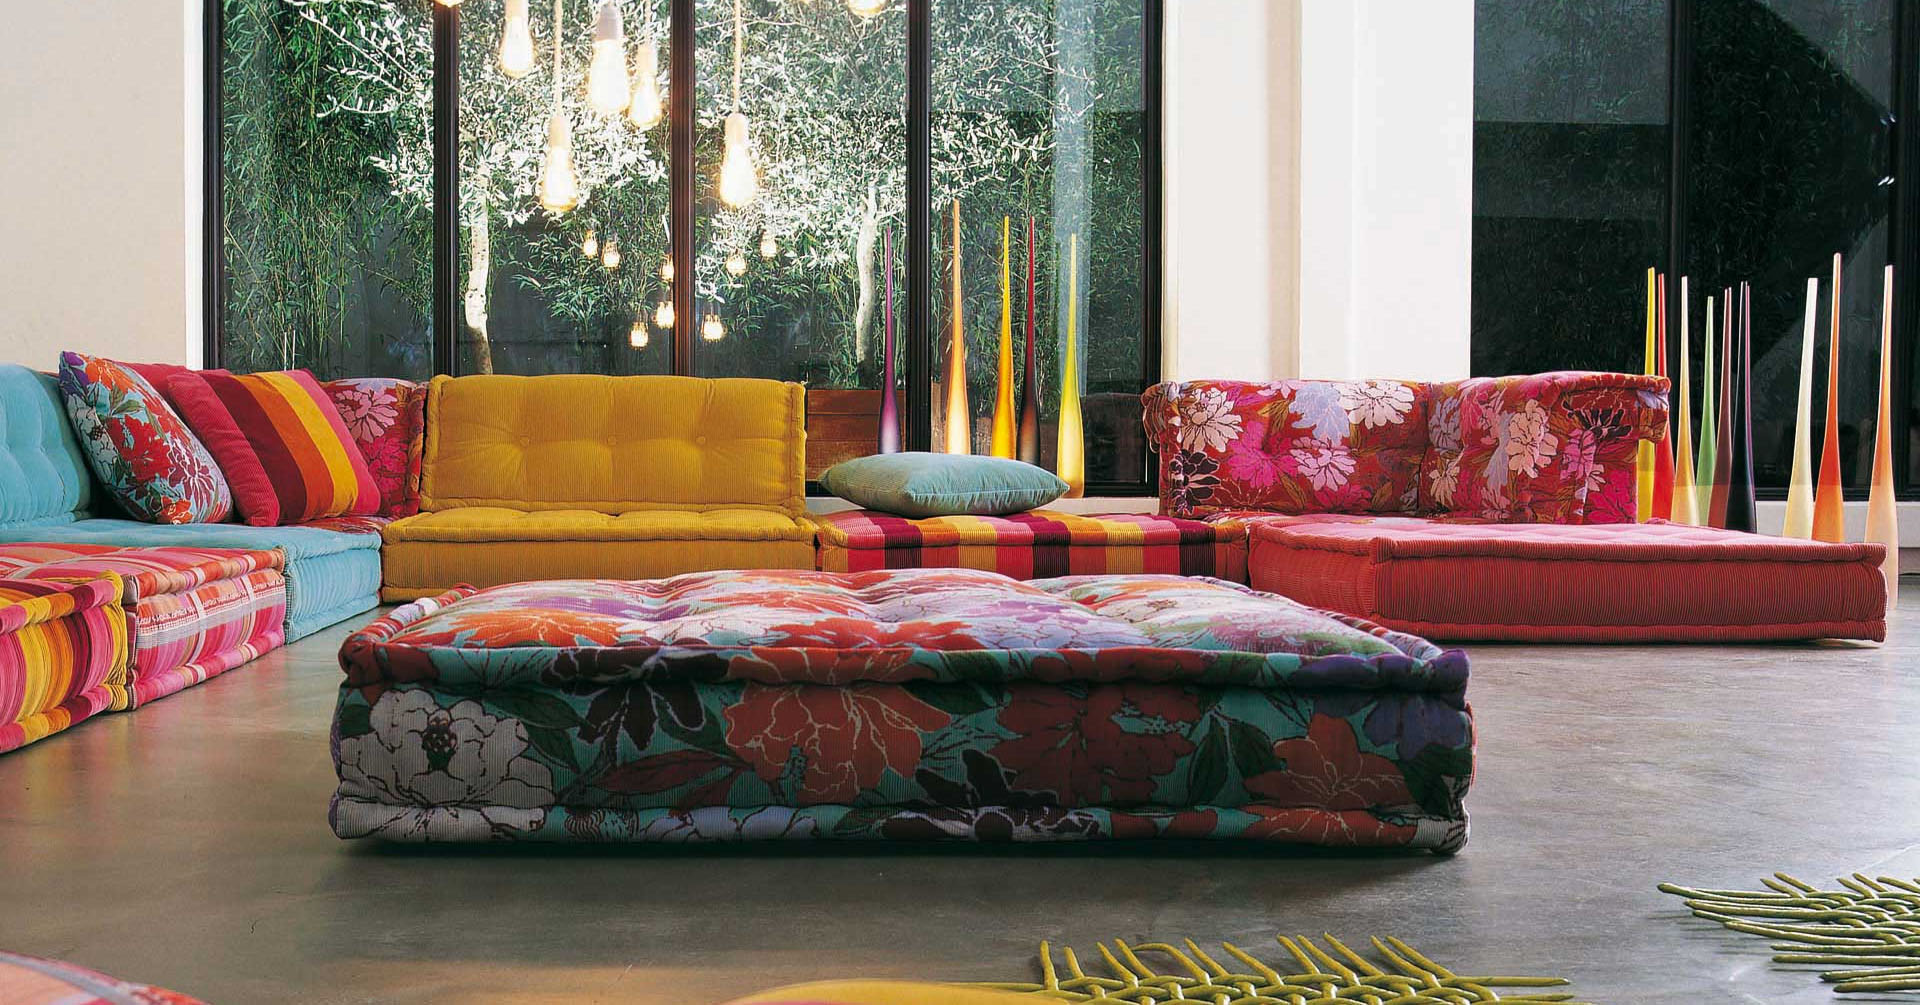 Roche bobois stylish and functional mah jong modular sofas idesignarch in - Roche bobois fauteuils ...